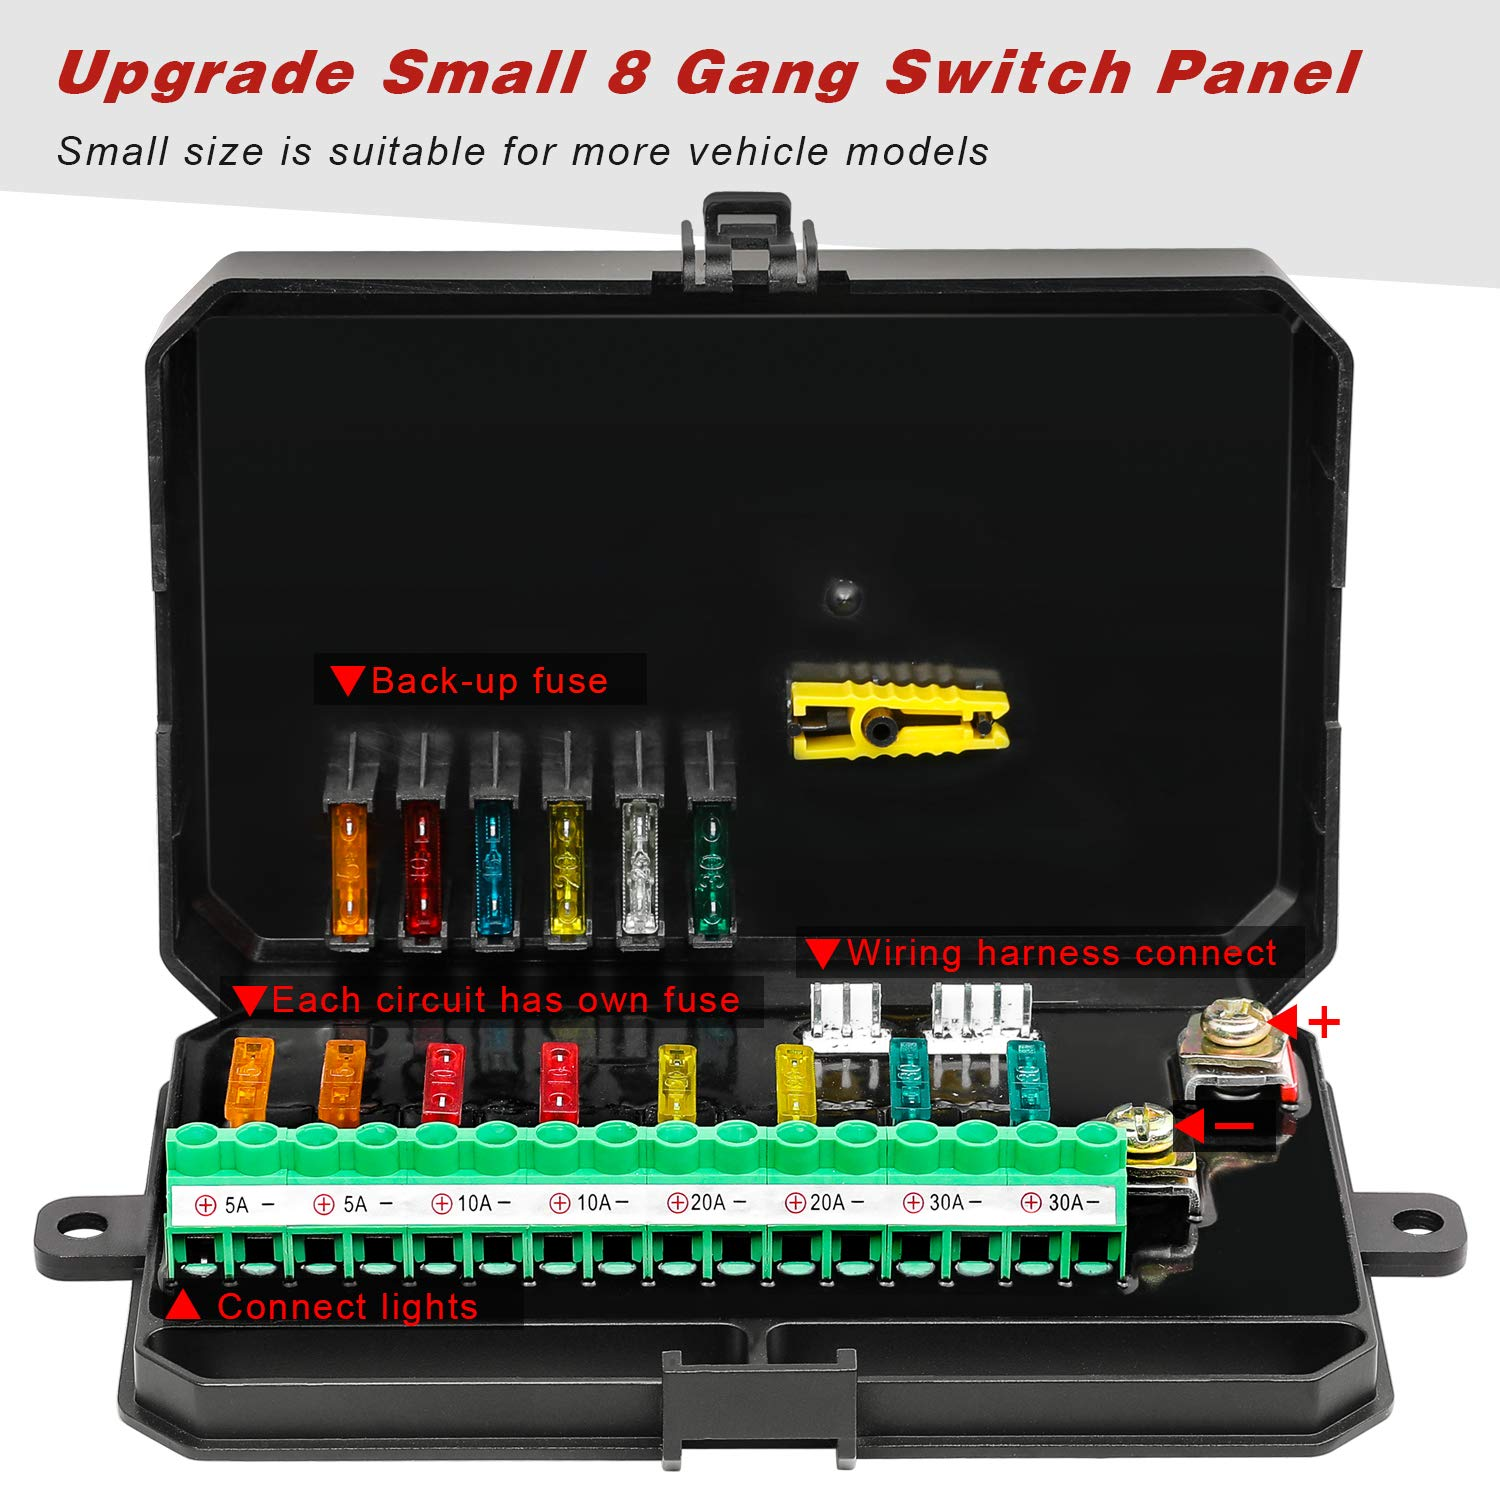 8 Gang Switch Panel Kit Auto Power Plus Circuit Control Box Electronic Relay System Universal ON//Off Touch Switch Box with Harness and Label Stickers for Truck Jeep ATV UTV Boat Marine